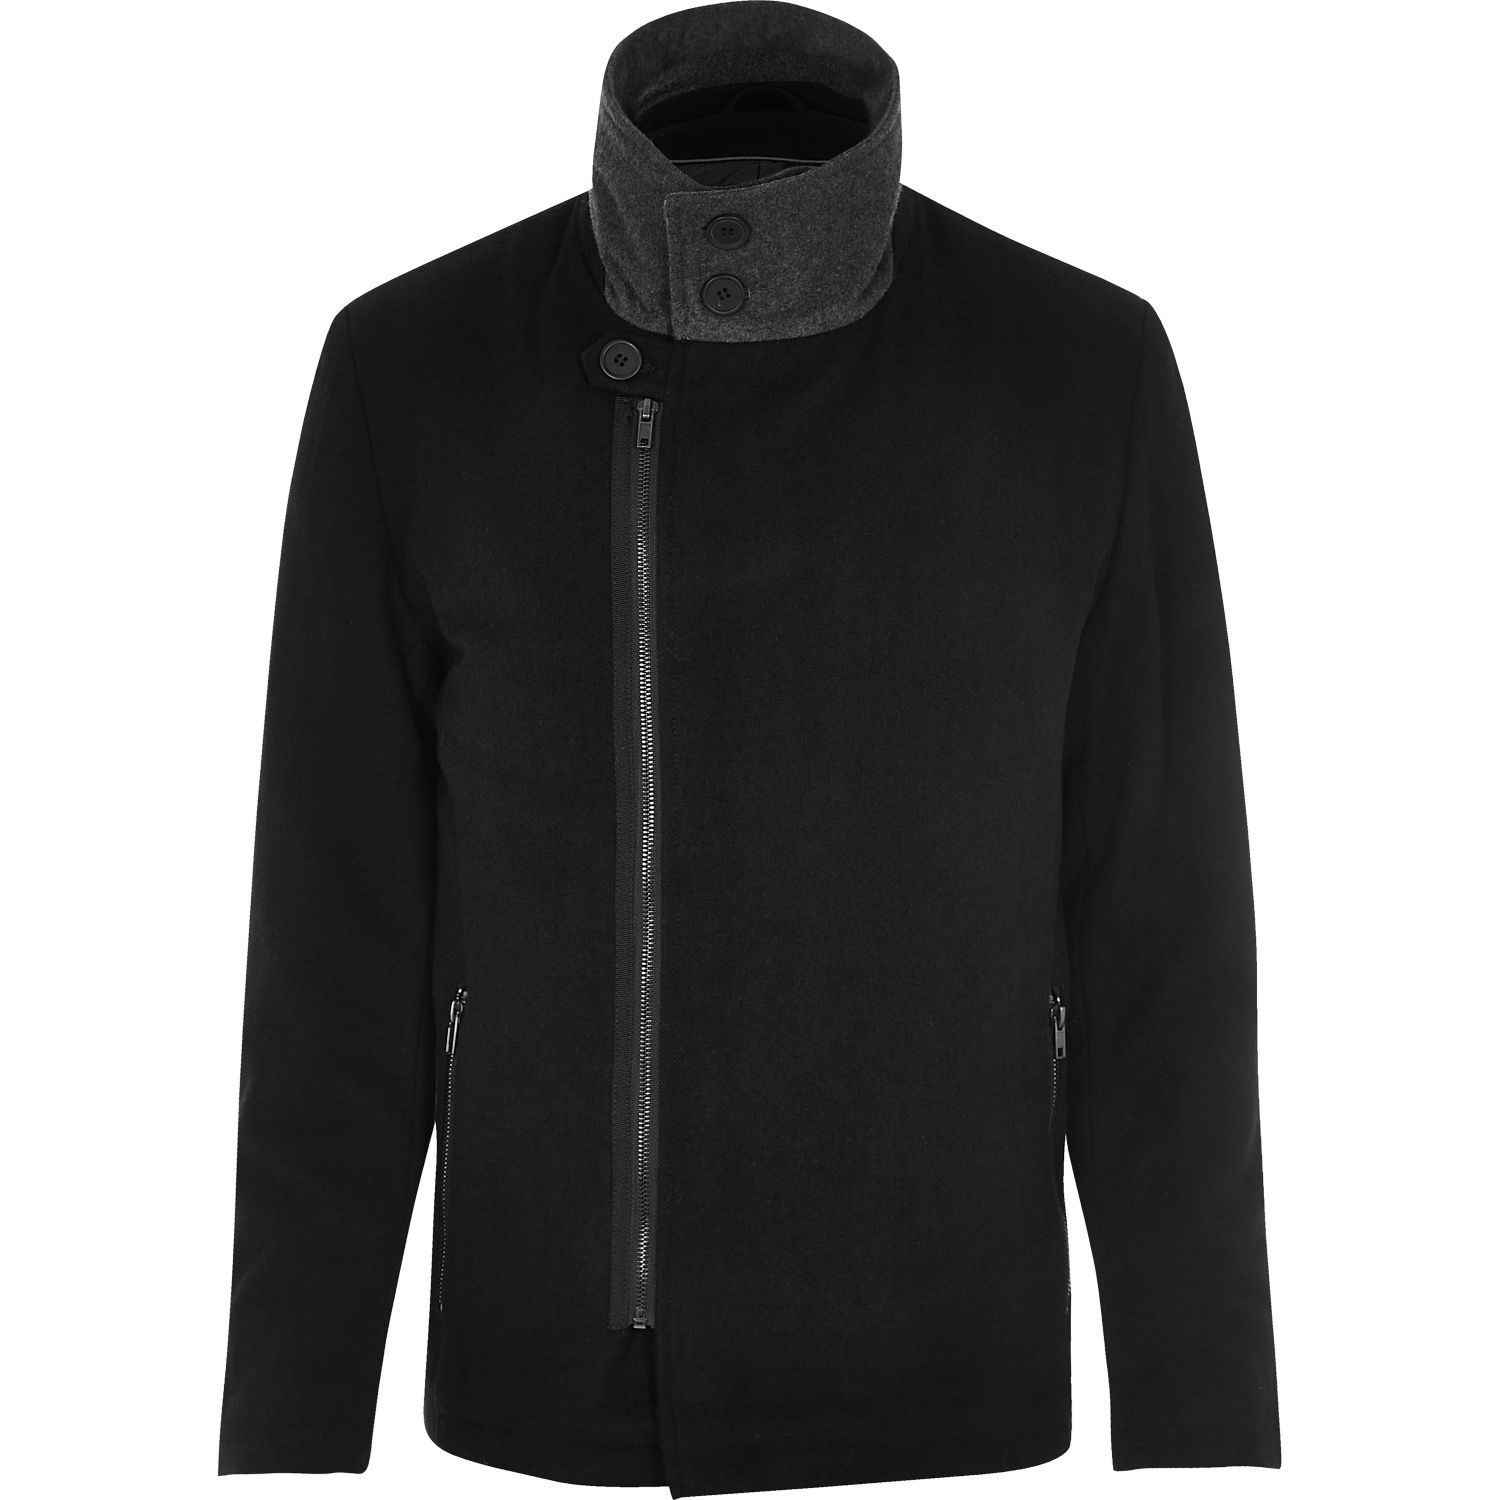 Find great deals on eBay for Turtleneck Jacket in Men's Coats And Jackets. Shop with confidence.